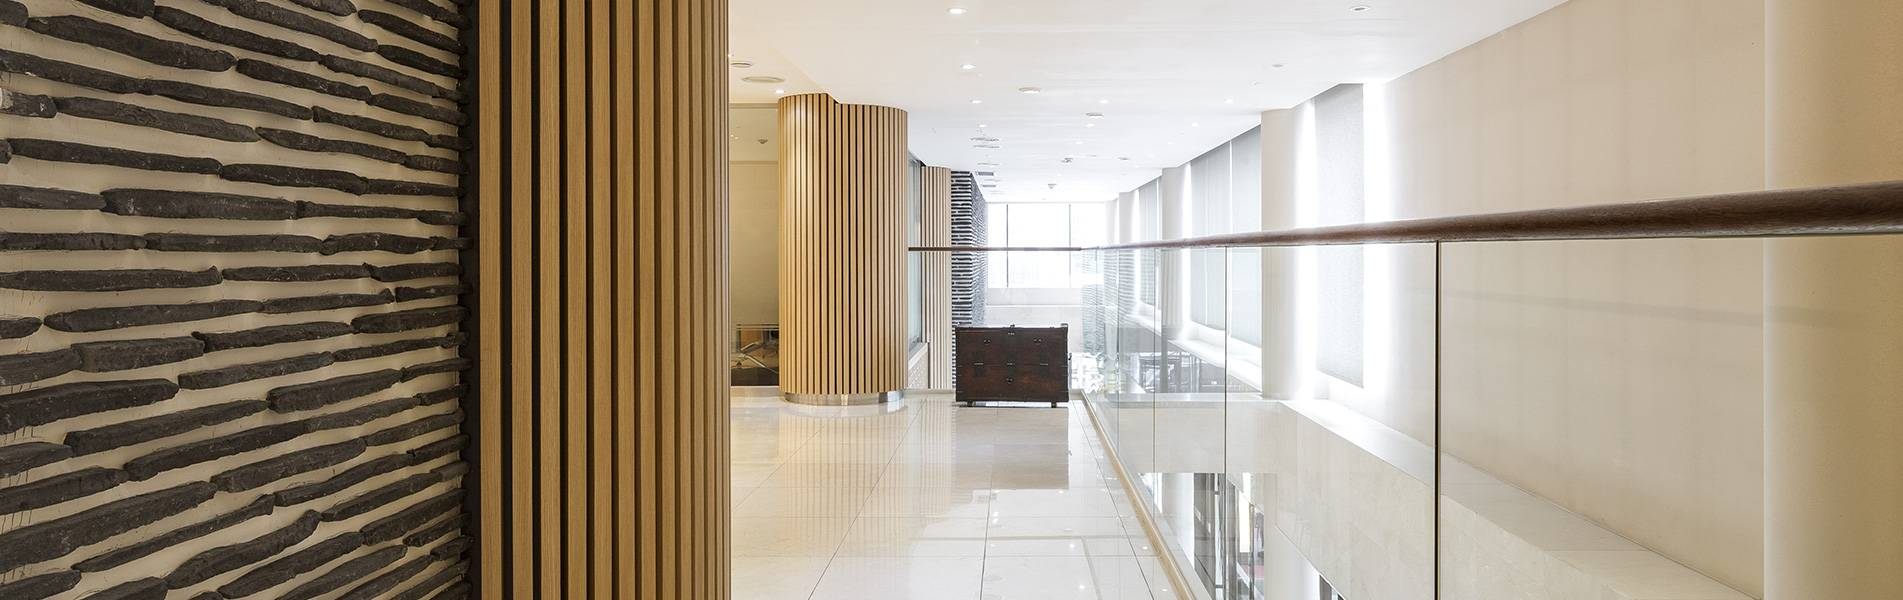 modern ballestrading in a corporate building